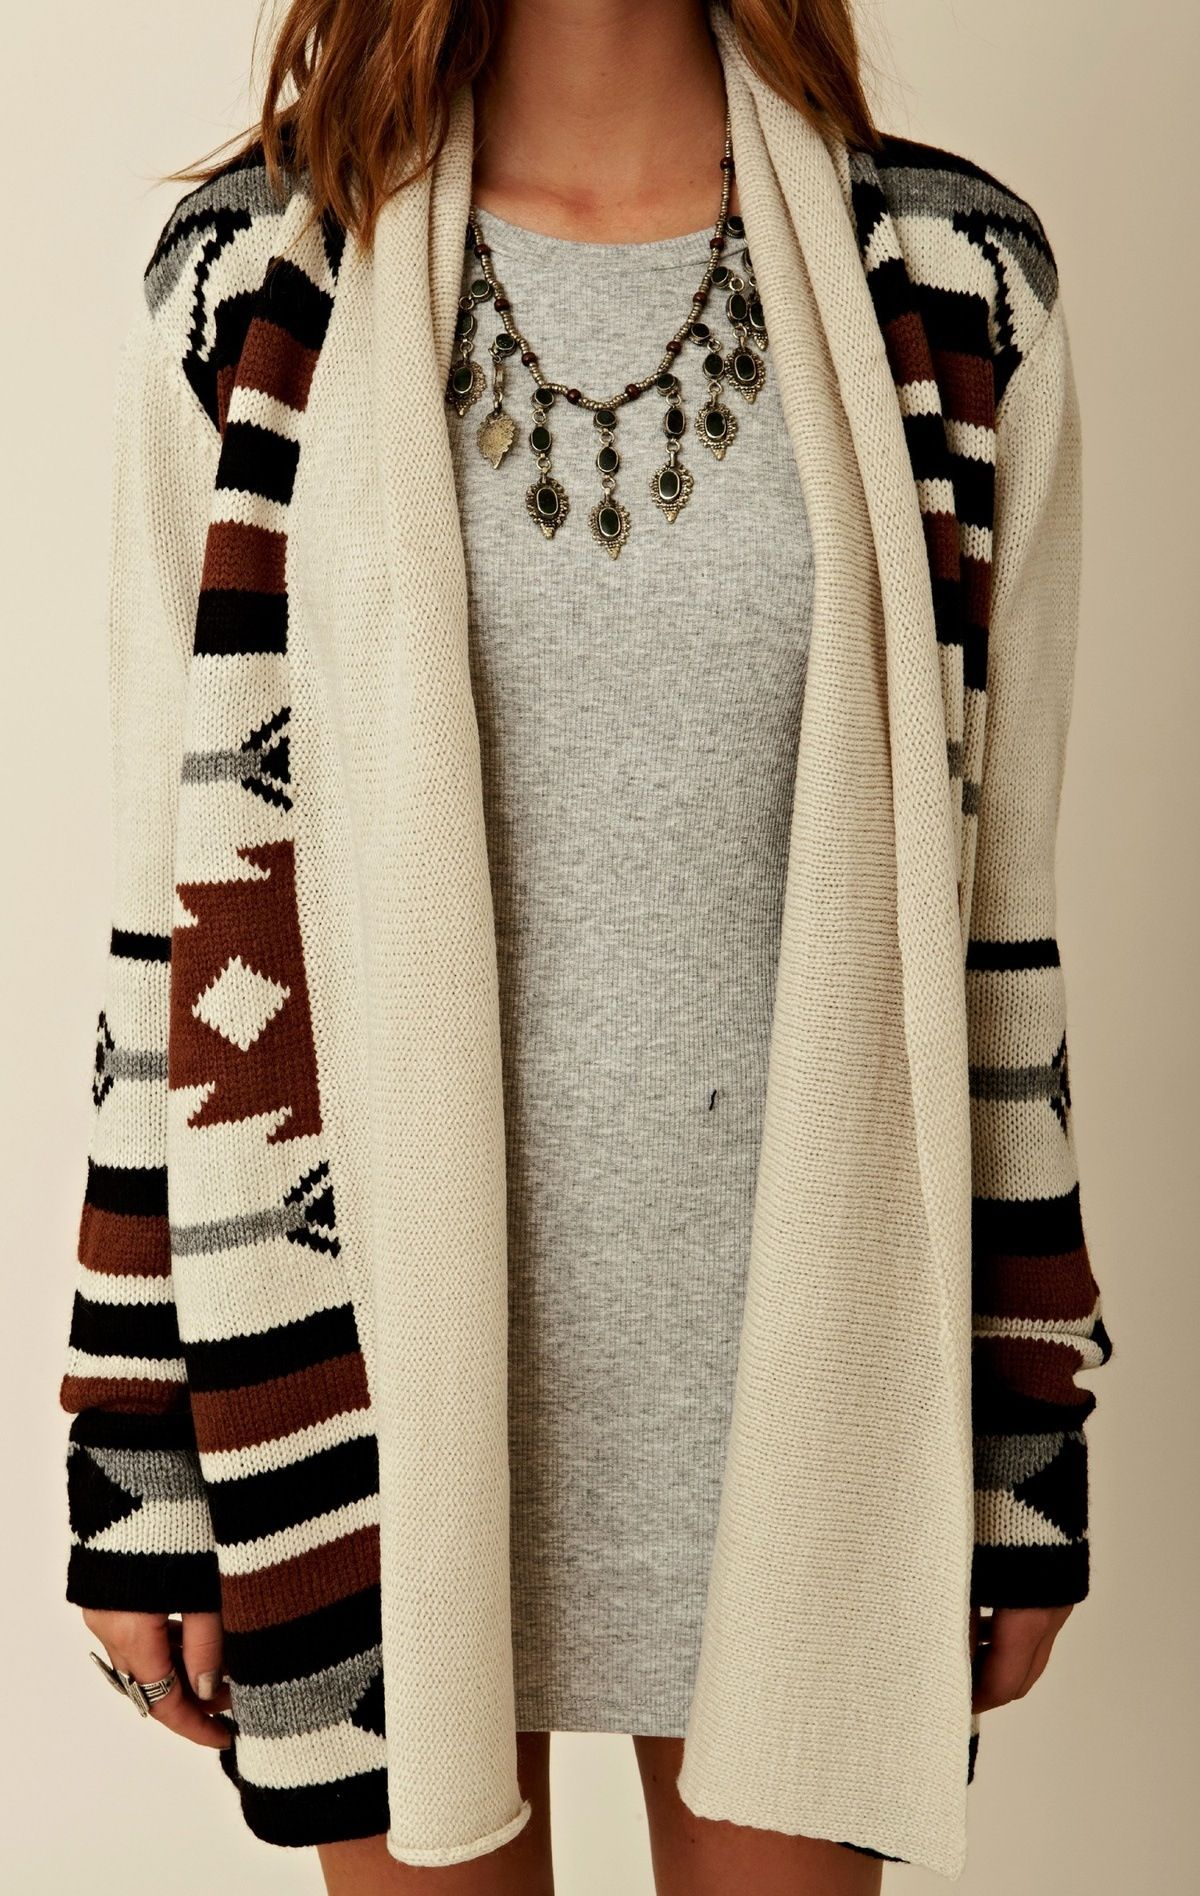 Layer Cardigans Over Dresses for Fall | Fall sweaters, Sweaters ...